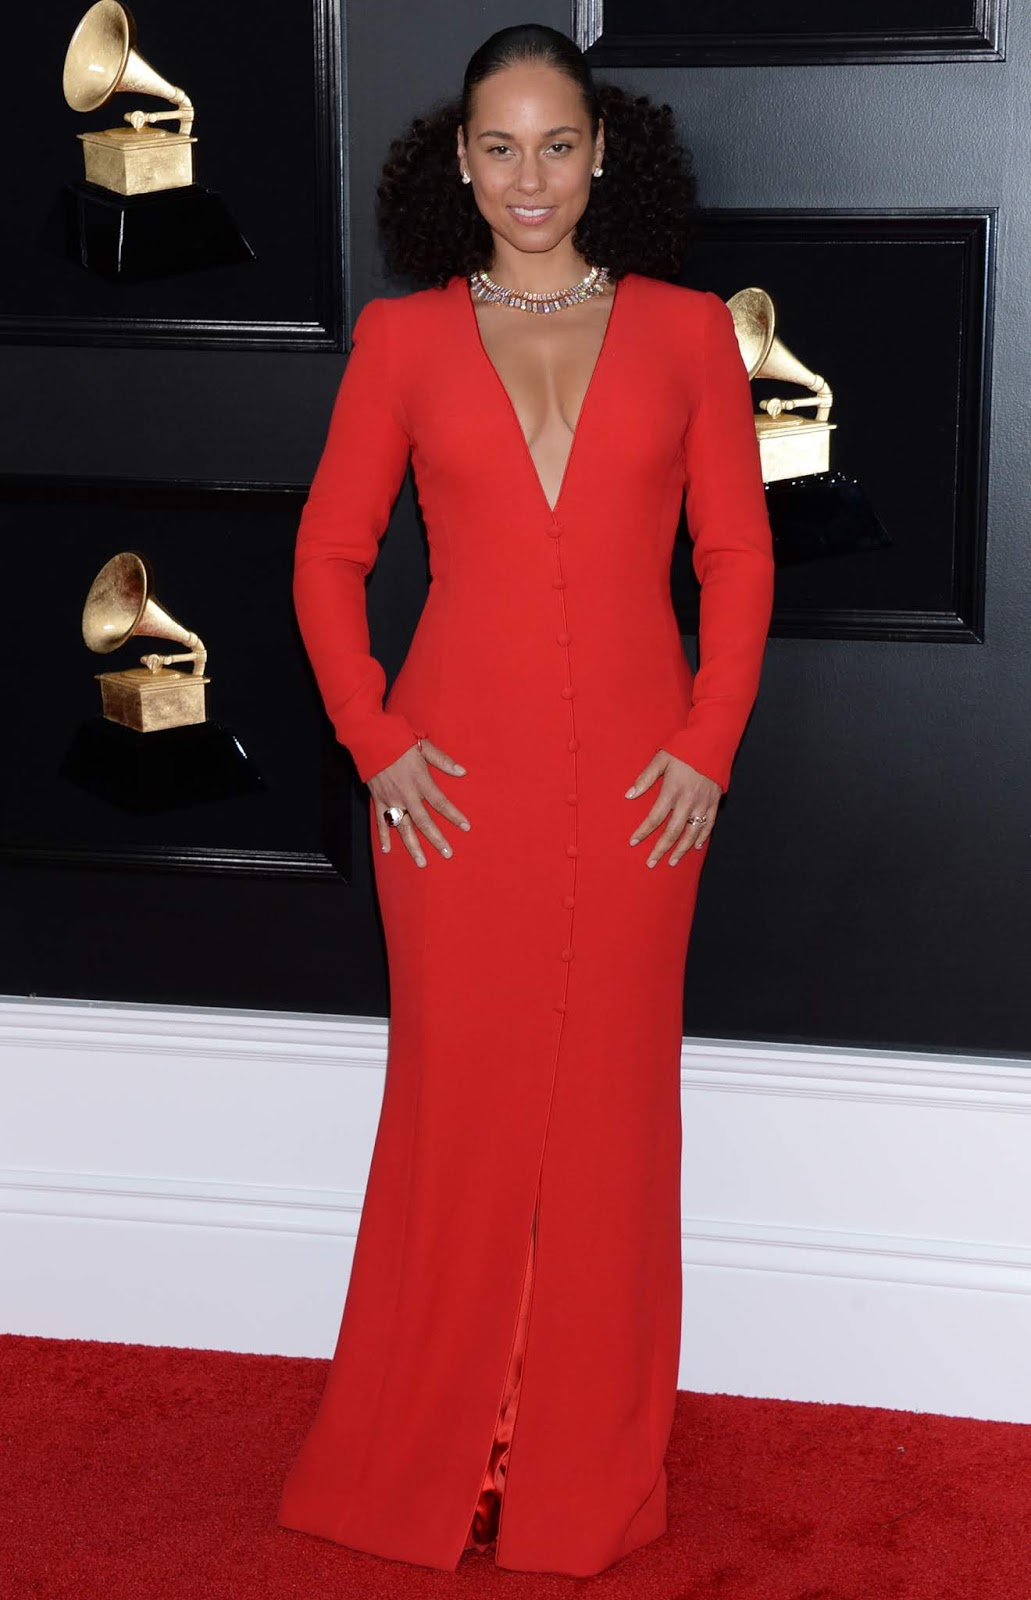 Alicia Keys - 61st Annual Grammy Awards 2019 at the Staples Center in Los Angeles, 10 February 2019